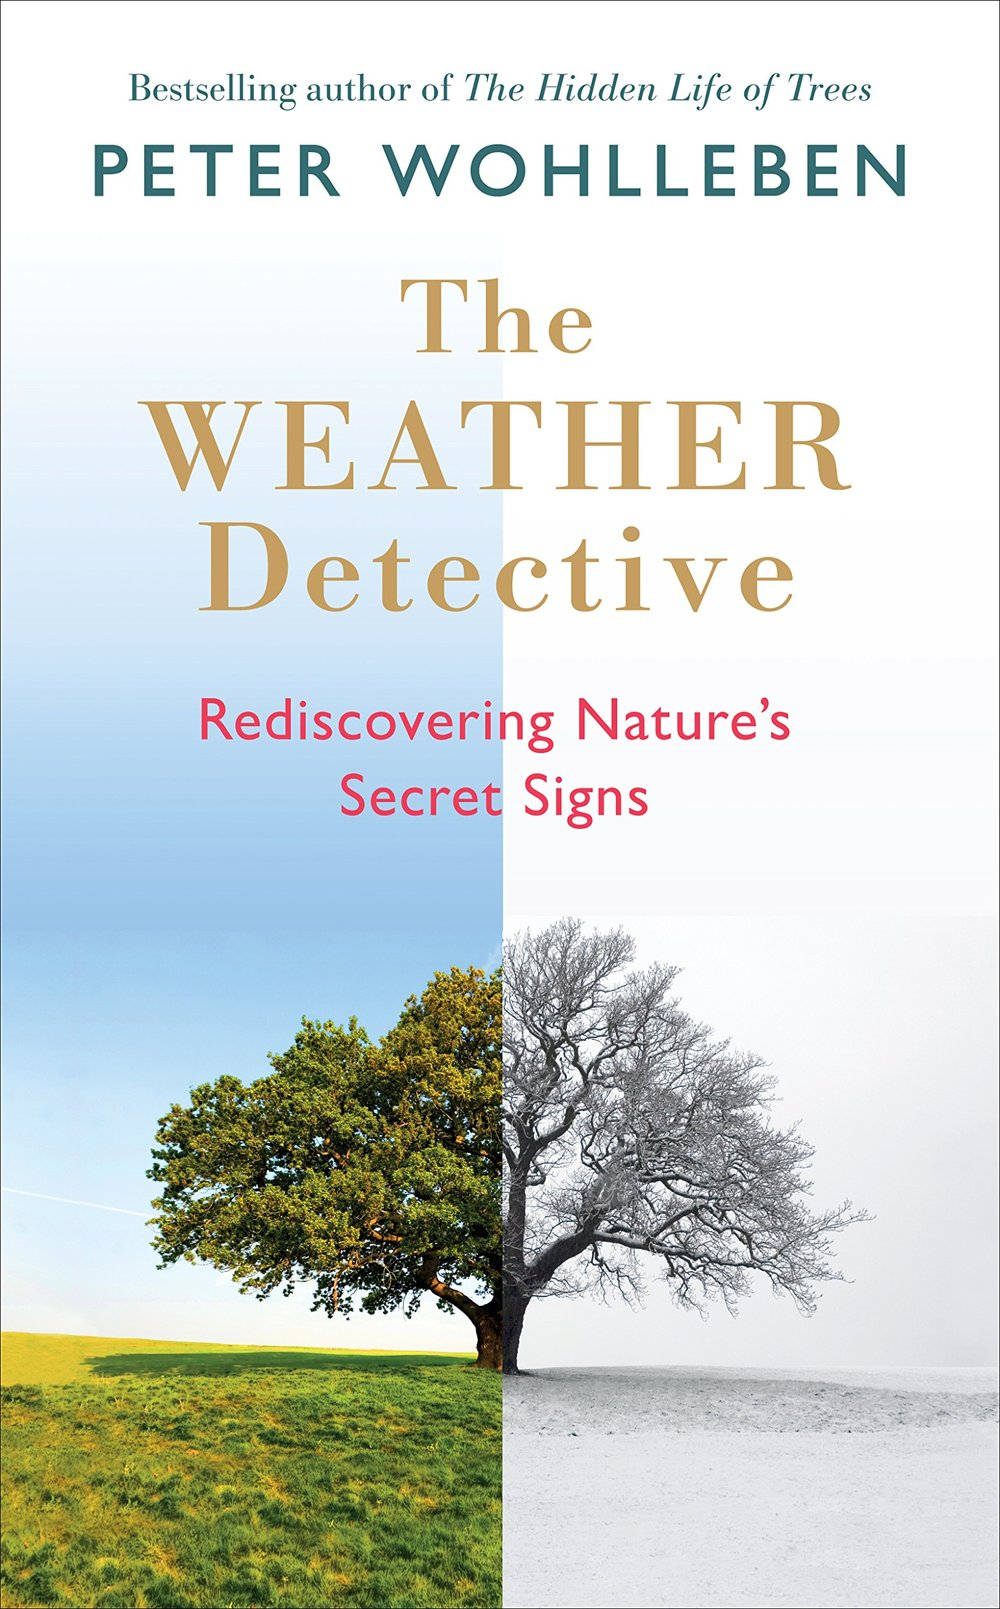 """The Weather Detective - by Peter Wohlleben""""The Weather Detective calls attention to patterns in weather and in the world to help readers connect with the natural environment. Wohlleben advocates for interacting with and observing nature from a broad atmospheric-scale down to the scale of your garden. This book also reminds us urban busy bodies to take pleasure in time spent outdoors and relaxing outside.""""- Margot Halpin, Landscape Designer"""